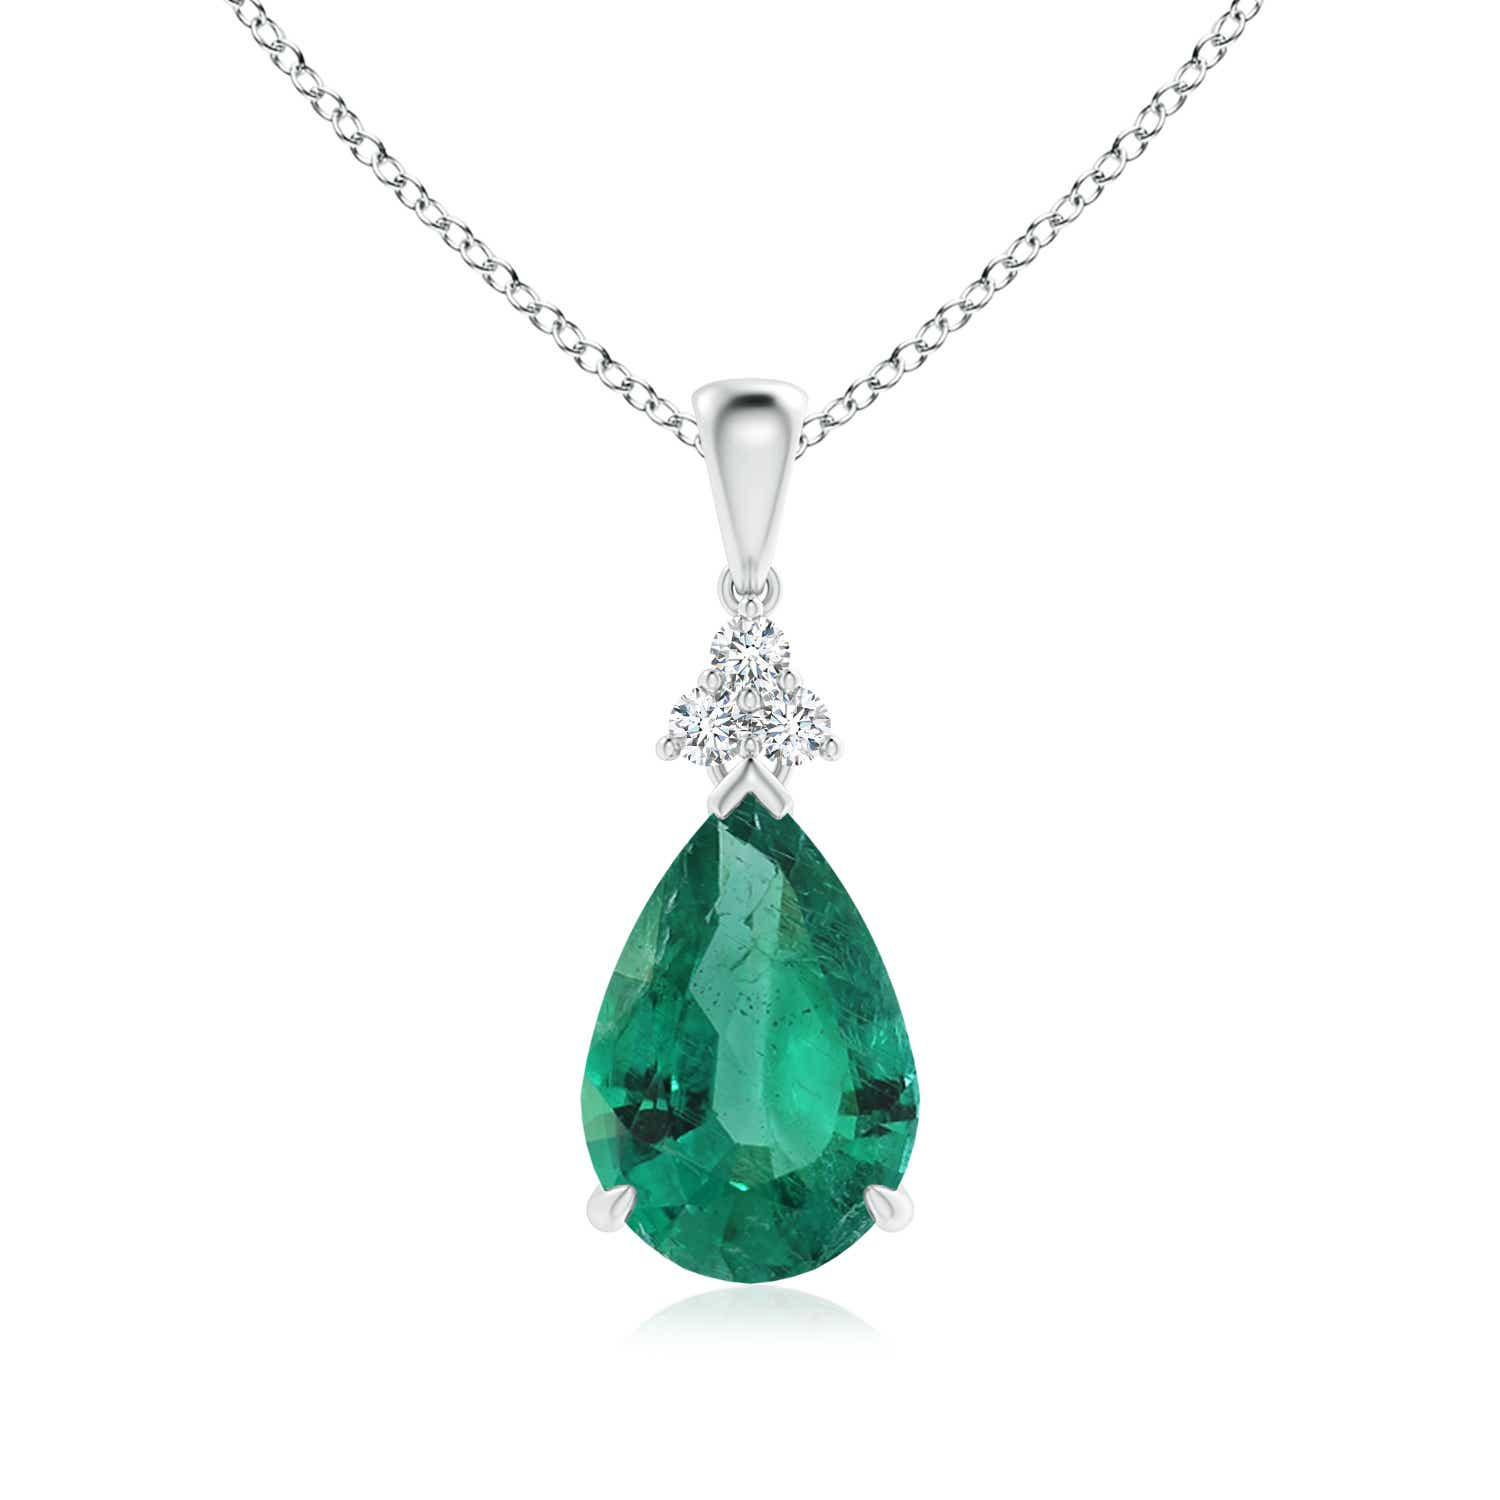 Angara Emerald Necklace - Claw-Set GIA Certified Emerald Drop Pendant with Diamonds